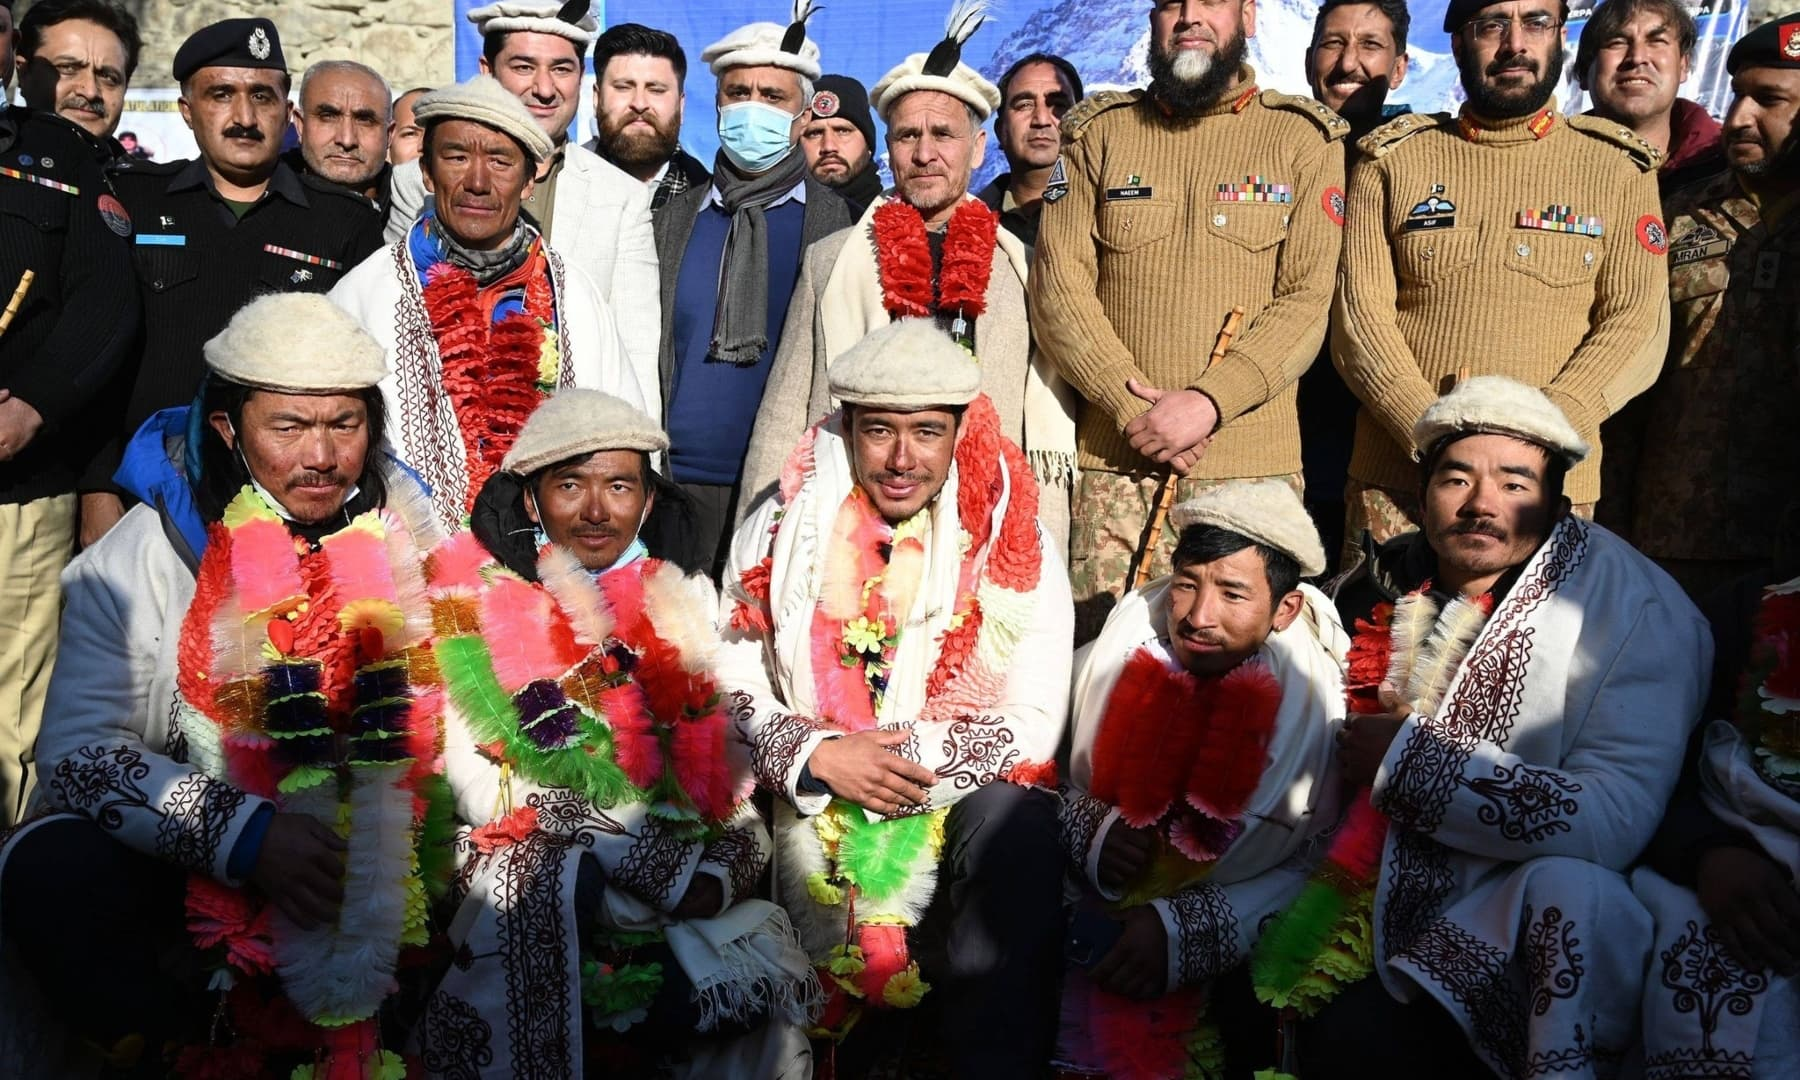 Nepal's climbers pose for a photograph with Pakistani officials while attending a welcome ceremony upon their arrival after becoming the first to summit Pakistan's K2 in winter, at Shigar district in Gilgit-Baltistan, Jan 20, 2021. — AFP